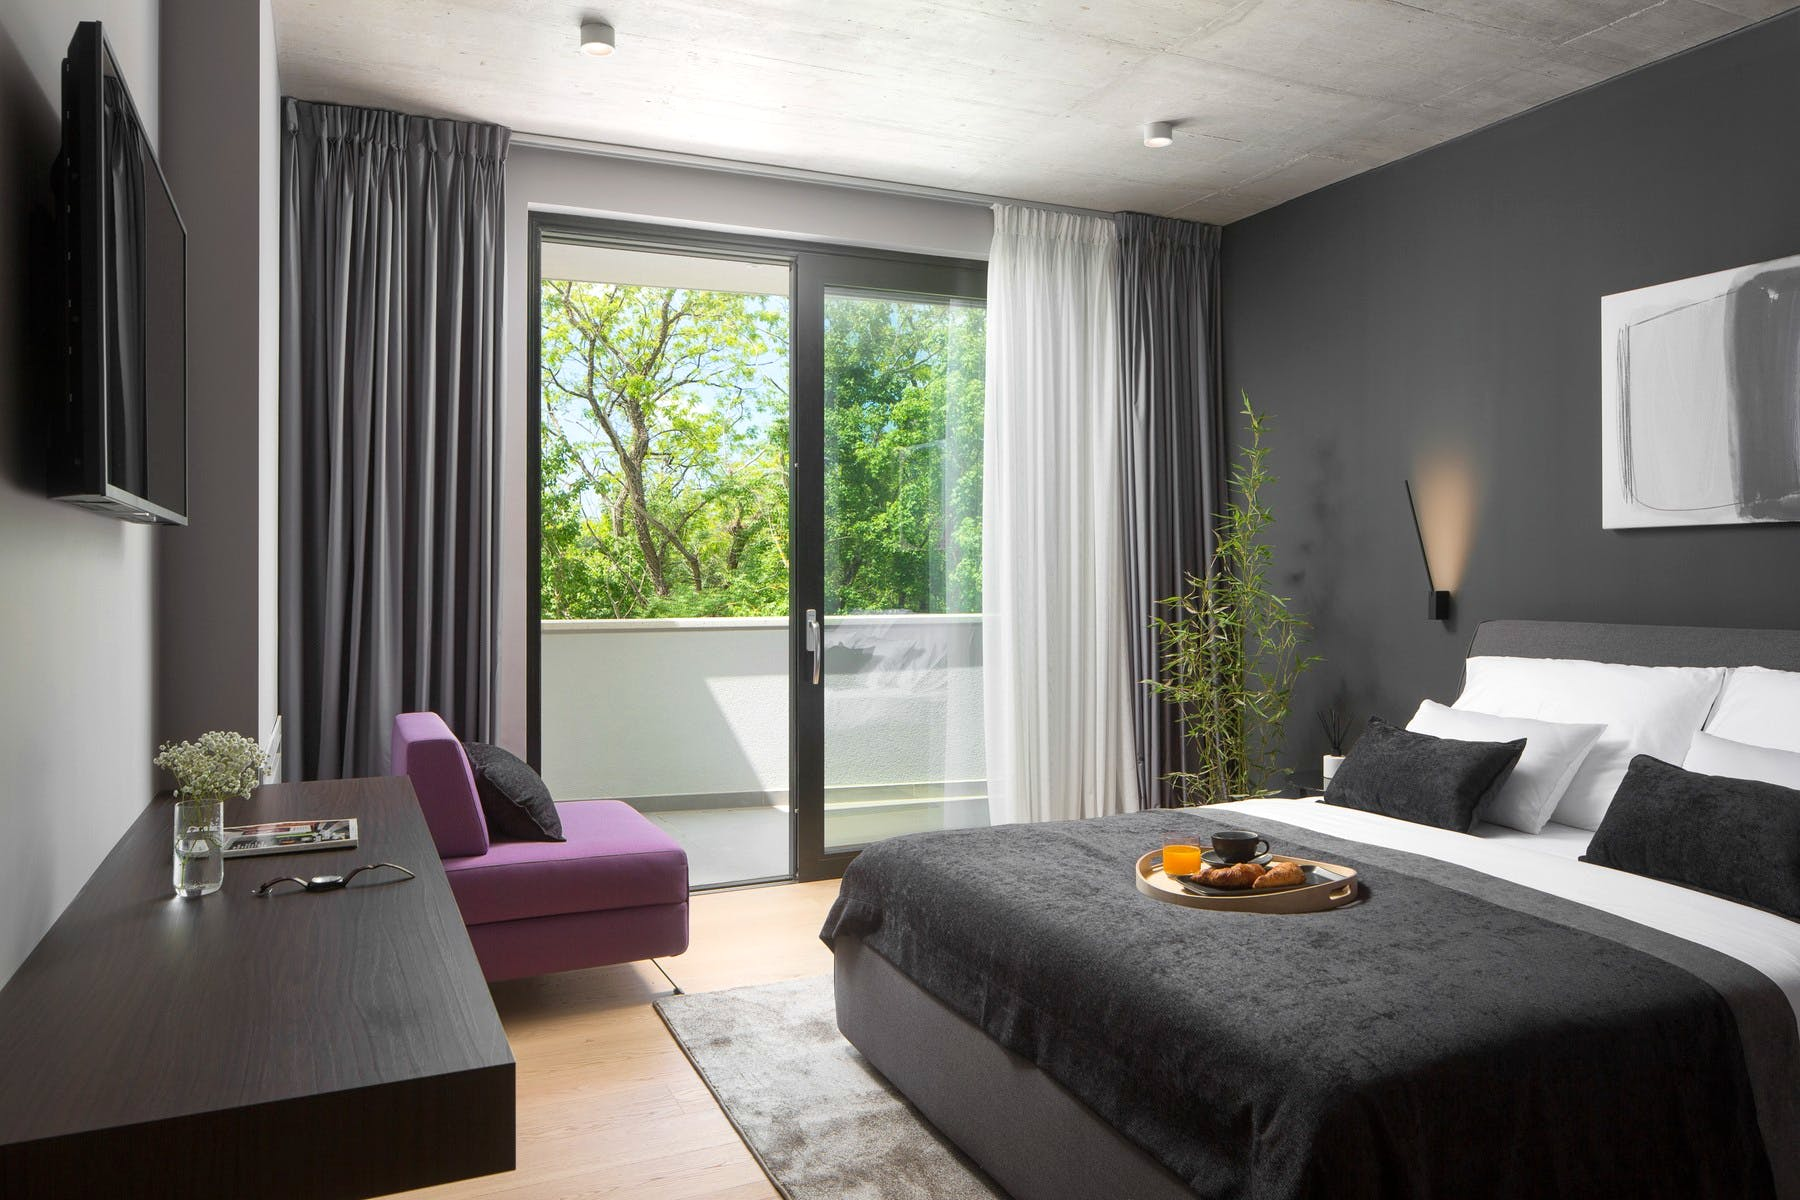 Spacious bedroom with balcony